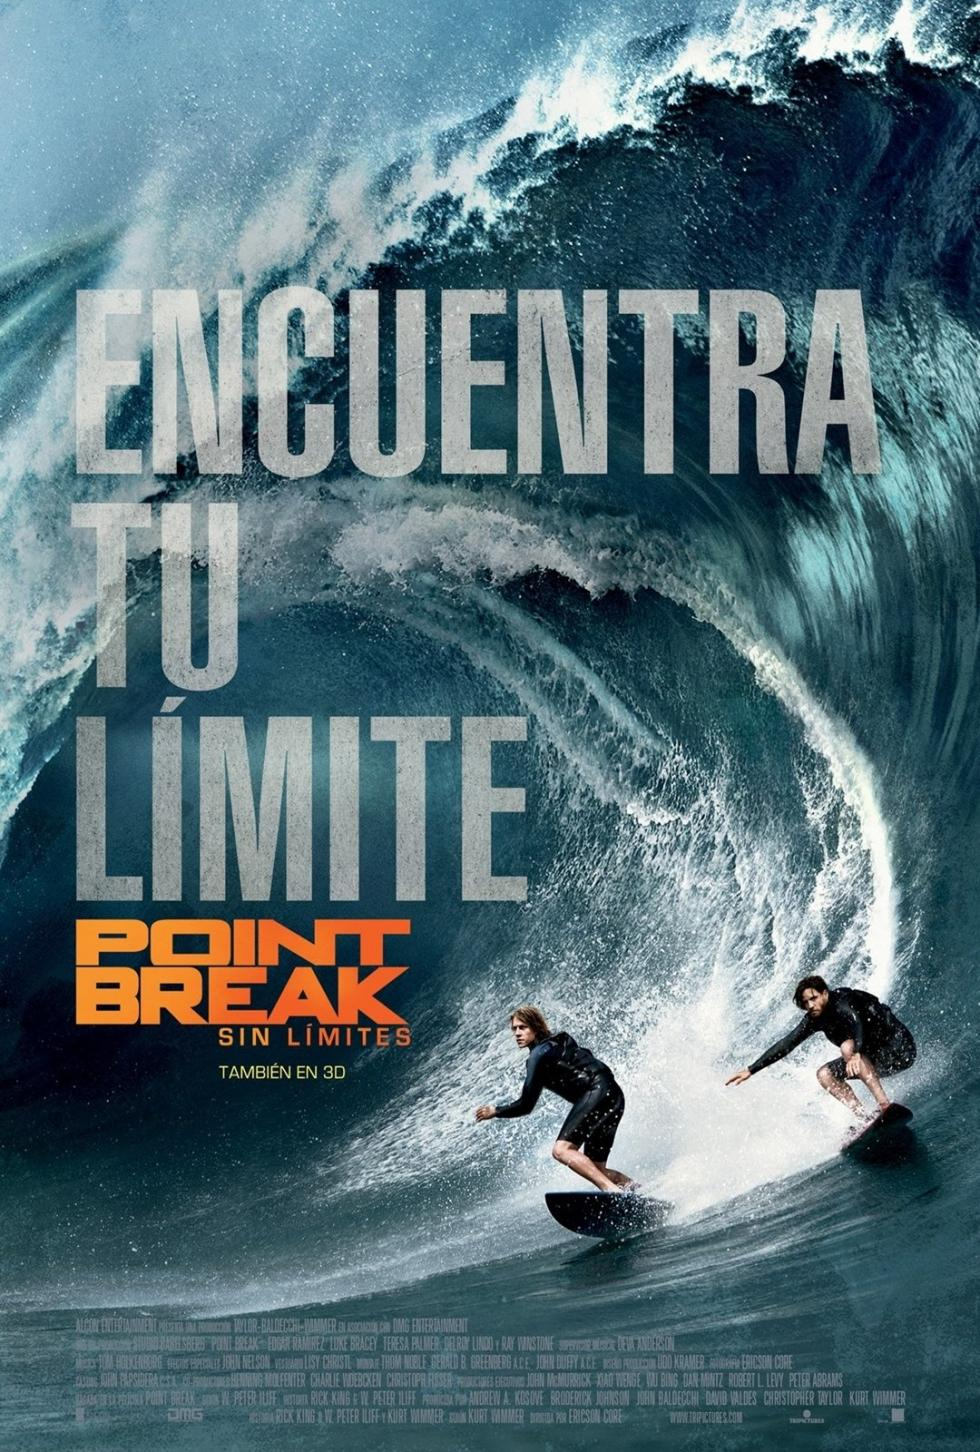 Point break: Sin límites